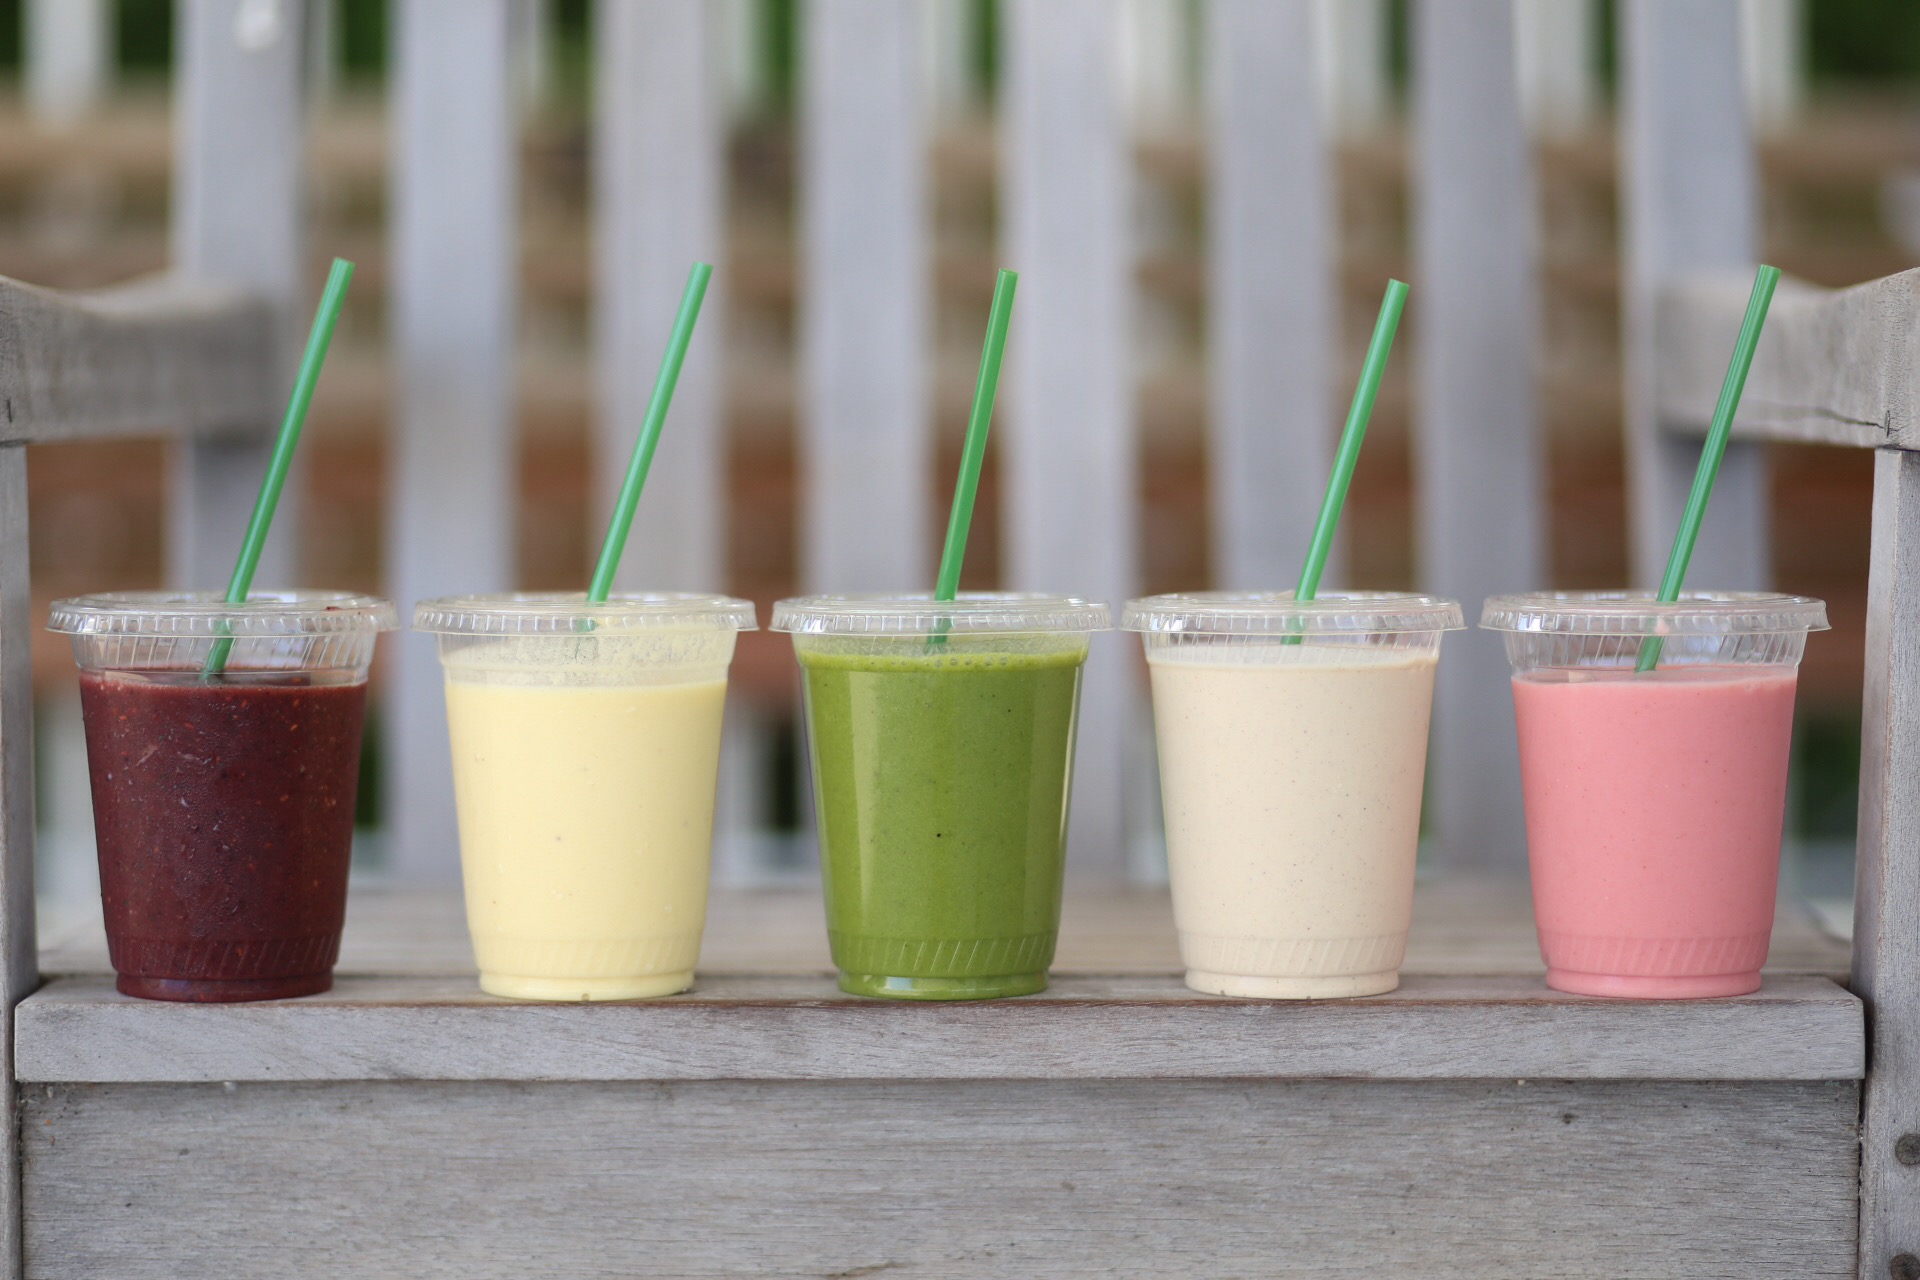 All our smoothies are made with authenticity which means no preservatives, no dyes of any kind, and REAL fruit.